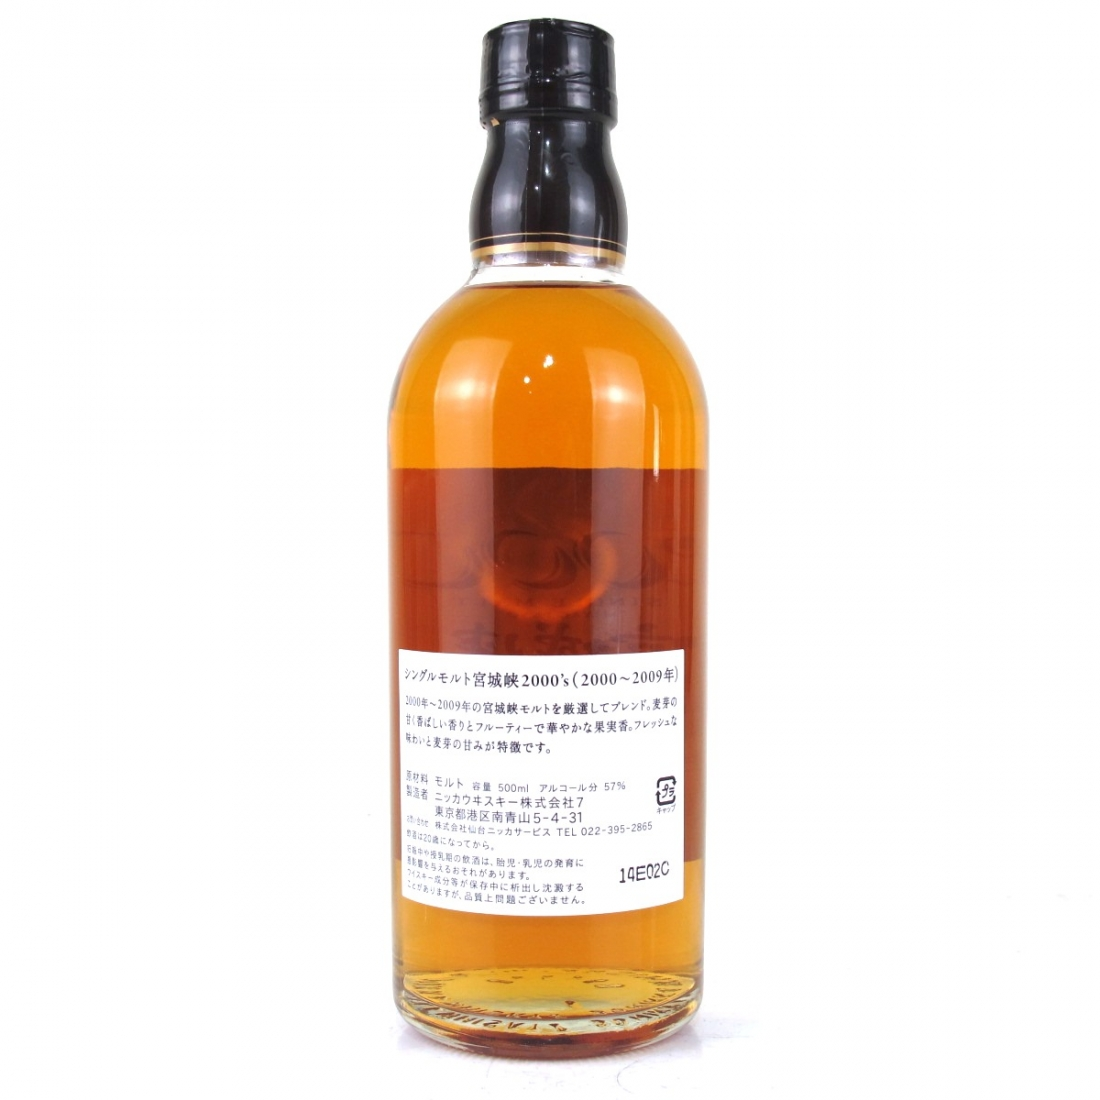 Yoichi 2000's Cask Strength 50cl